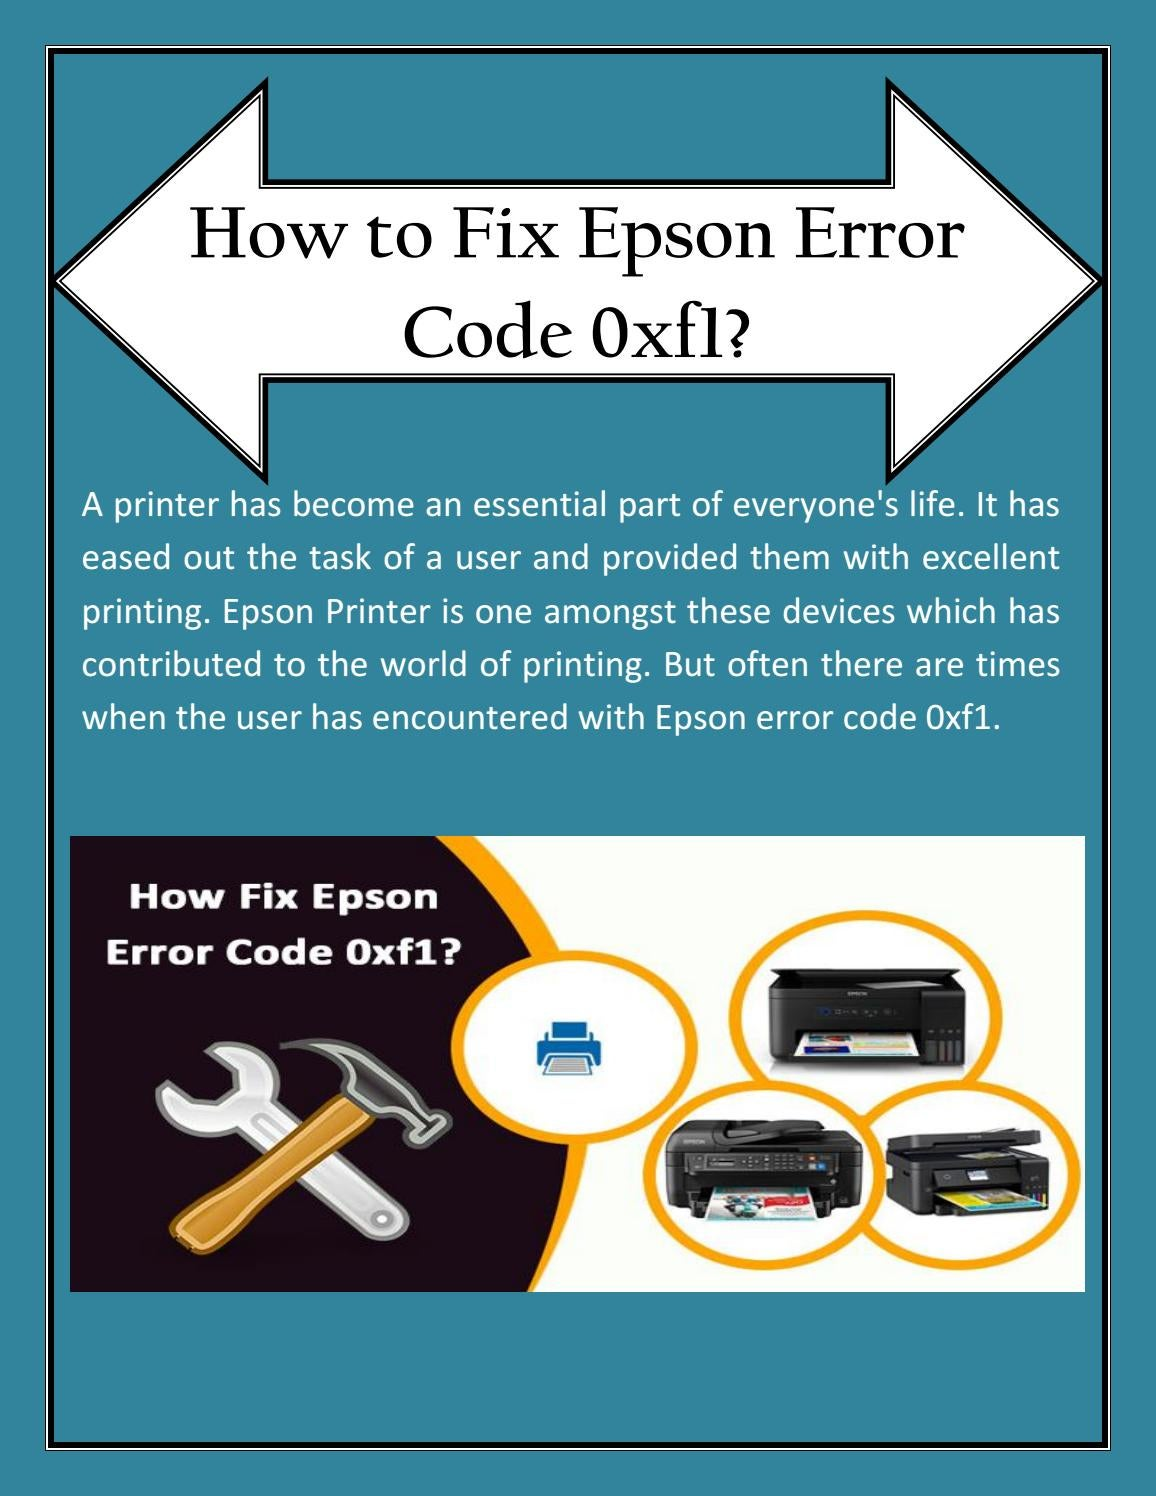 Contact Epson Support Number and Fix Epson Error Code 0xf1 by lilyjames -  issuu